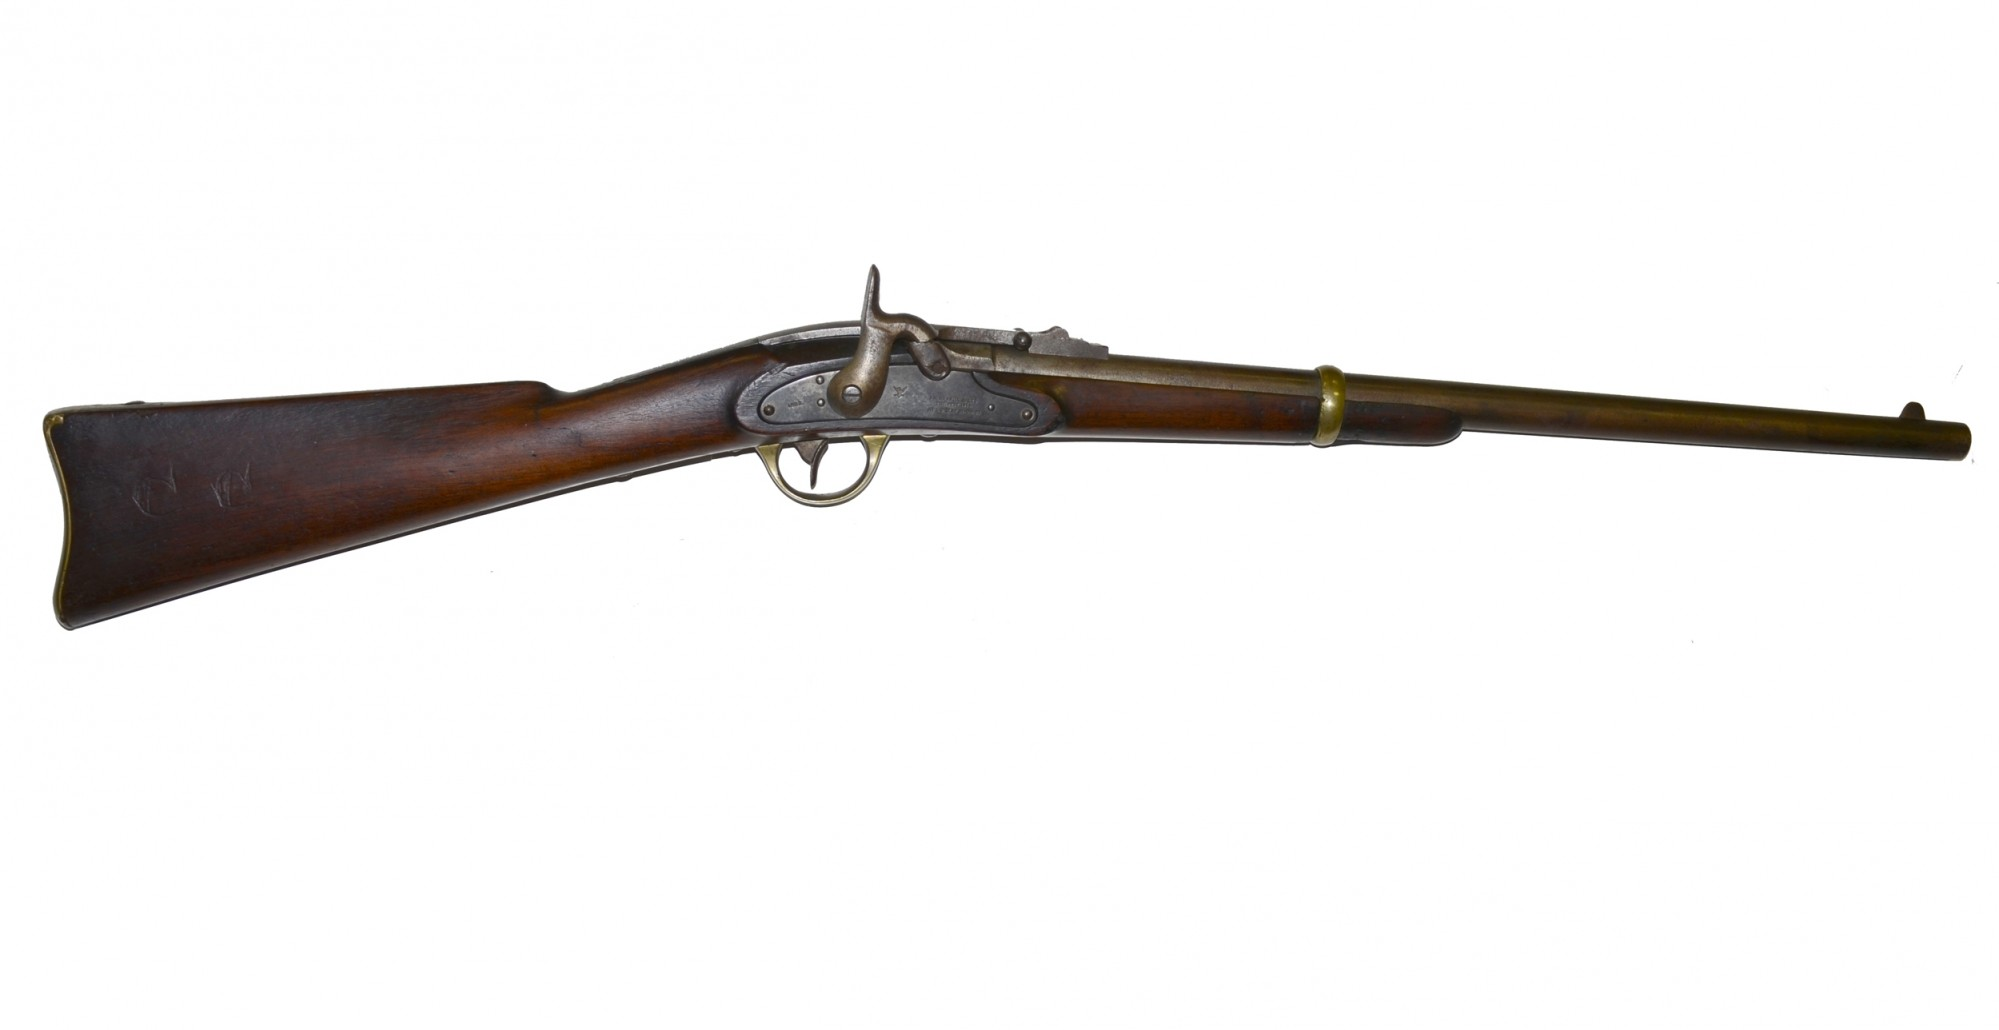 ORIGINAL CIVIL WAR 2nd MODEL MERRILL CARBINE